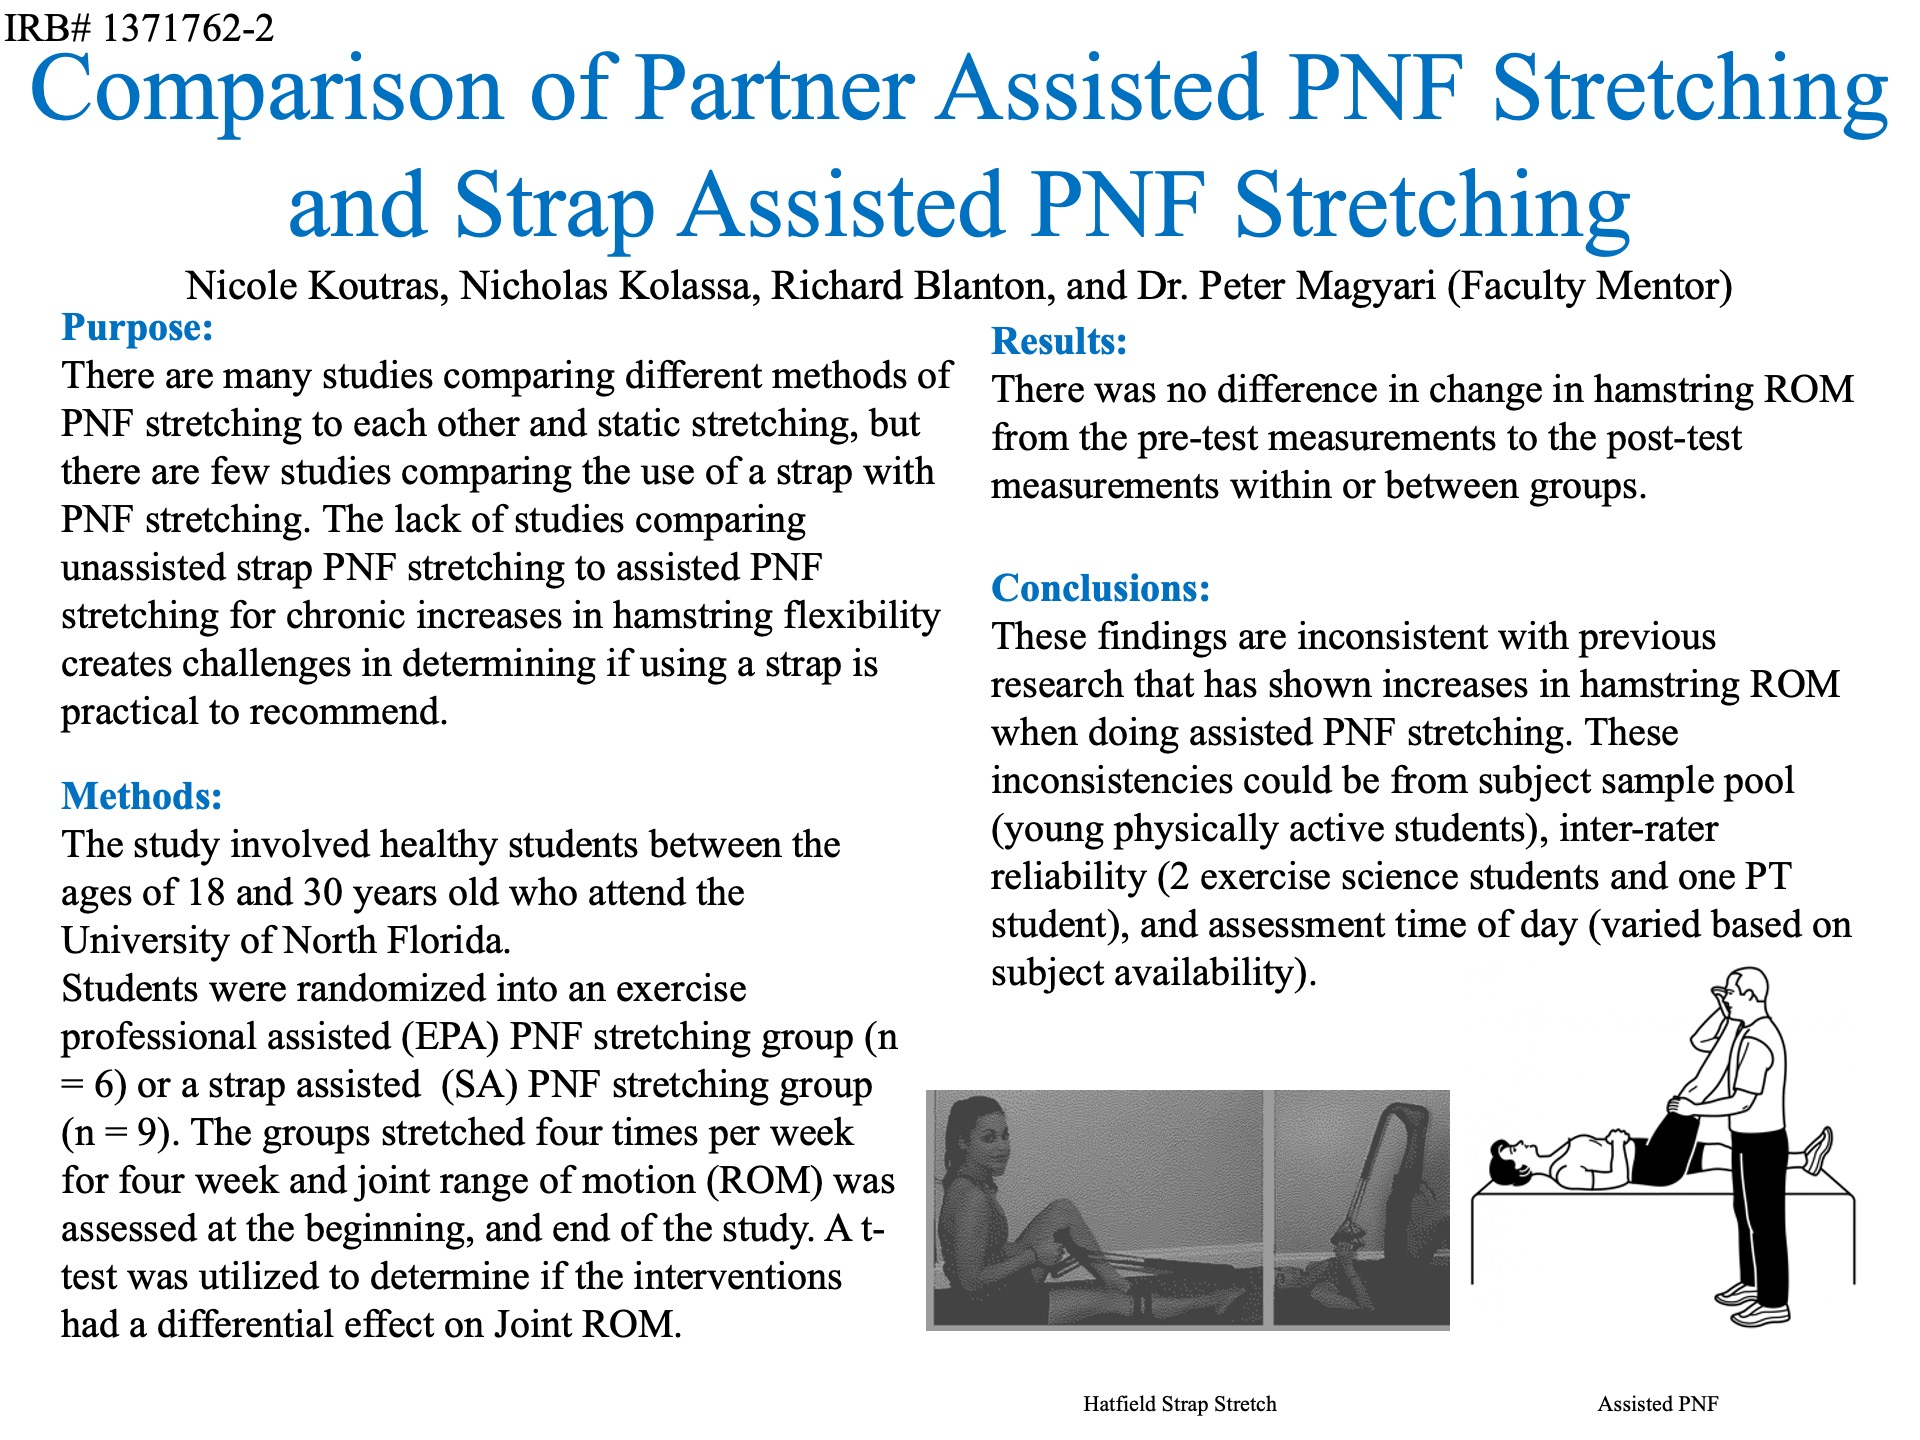 Comparison of Partner Assisted PNF Stretching and Strap Assisted PNF Stretching poster